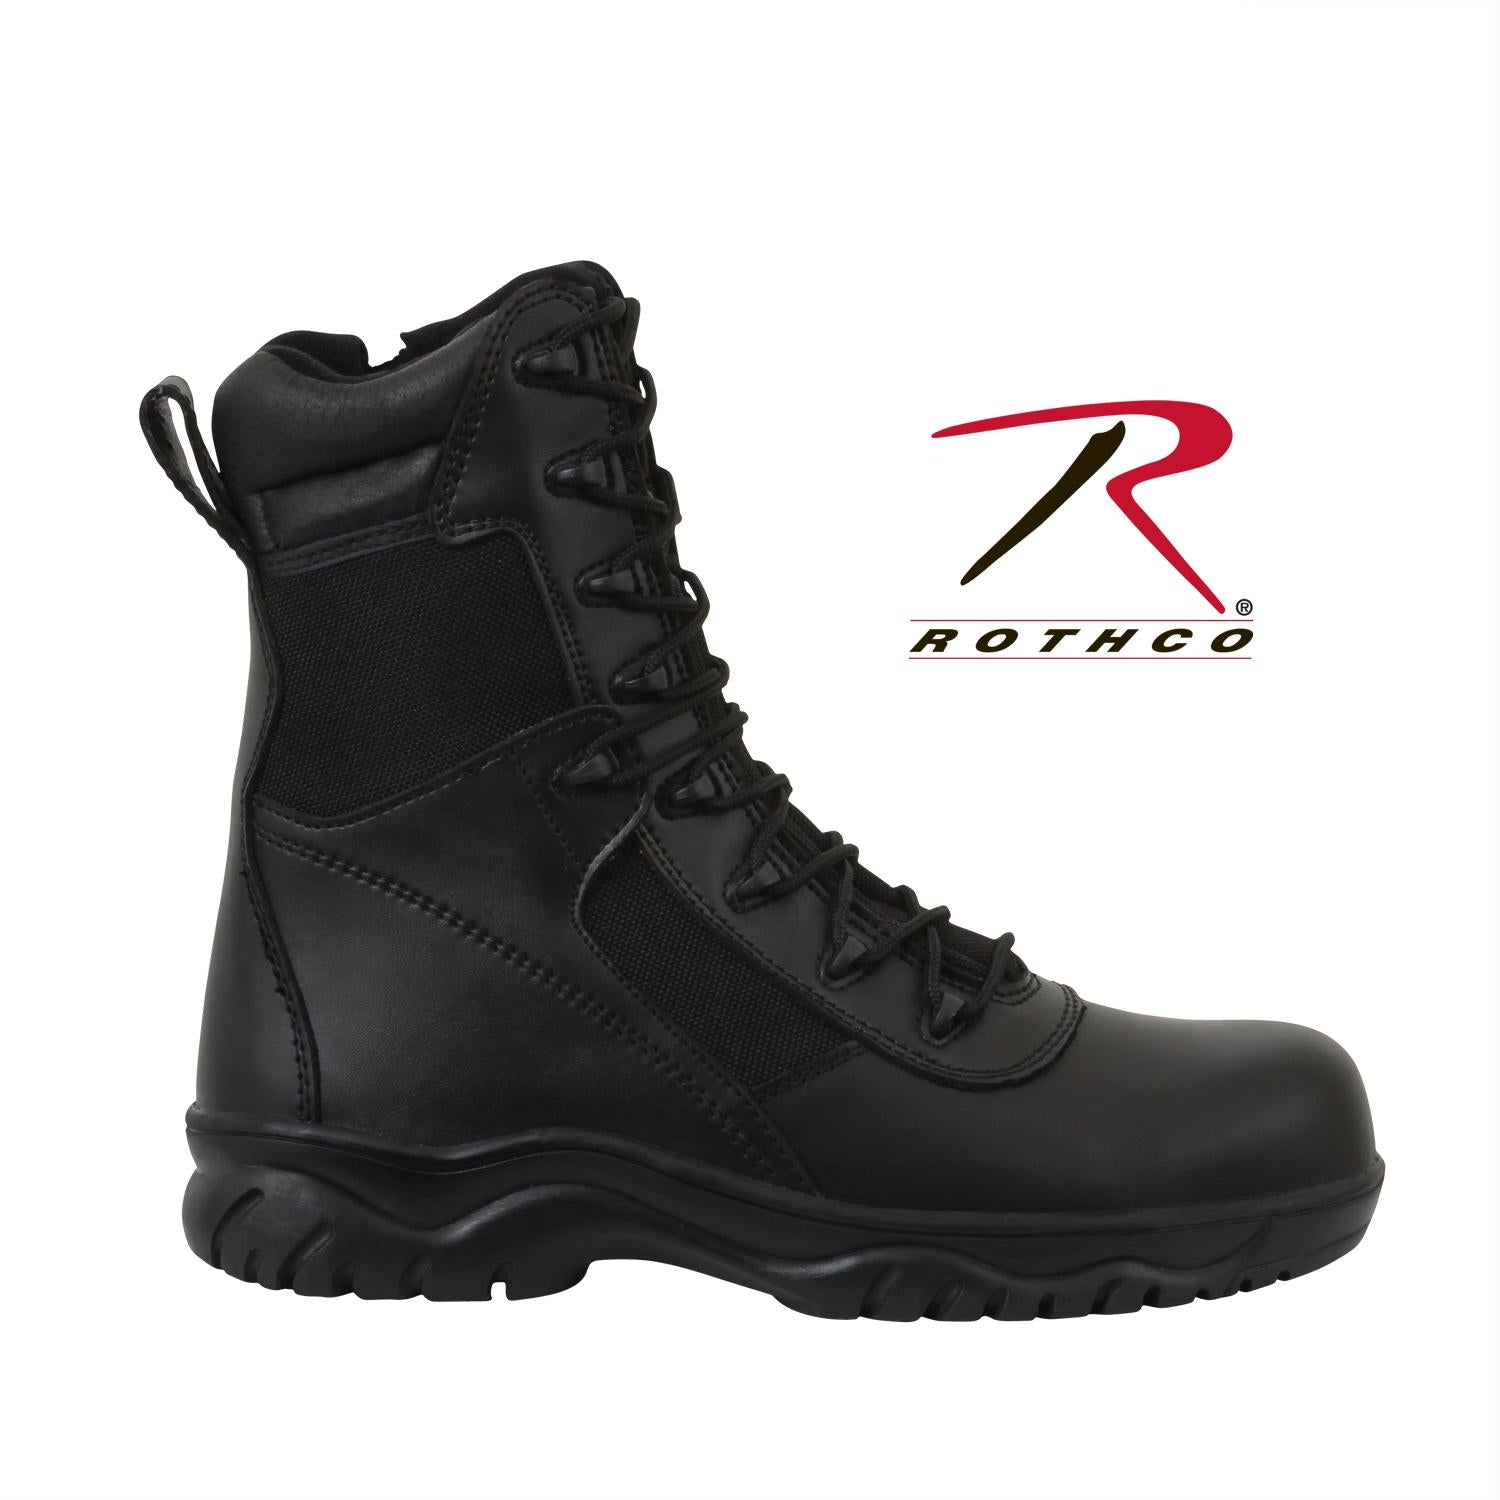 Rothco 8 Inch Forced Entry Tactical Boot With Side Zipper & Composite Toe - 14